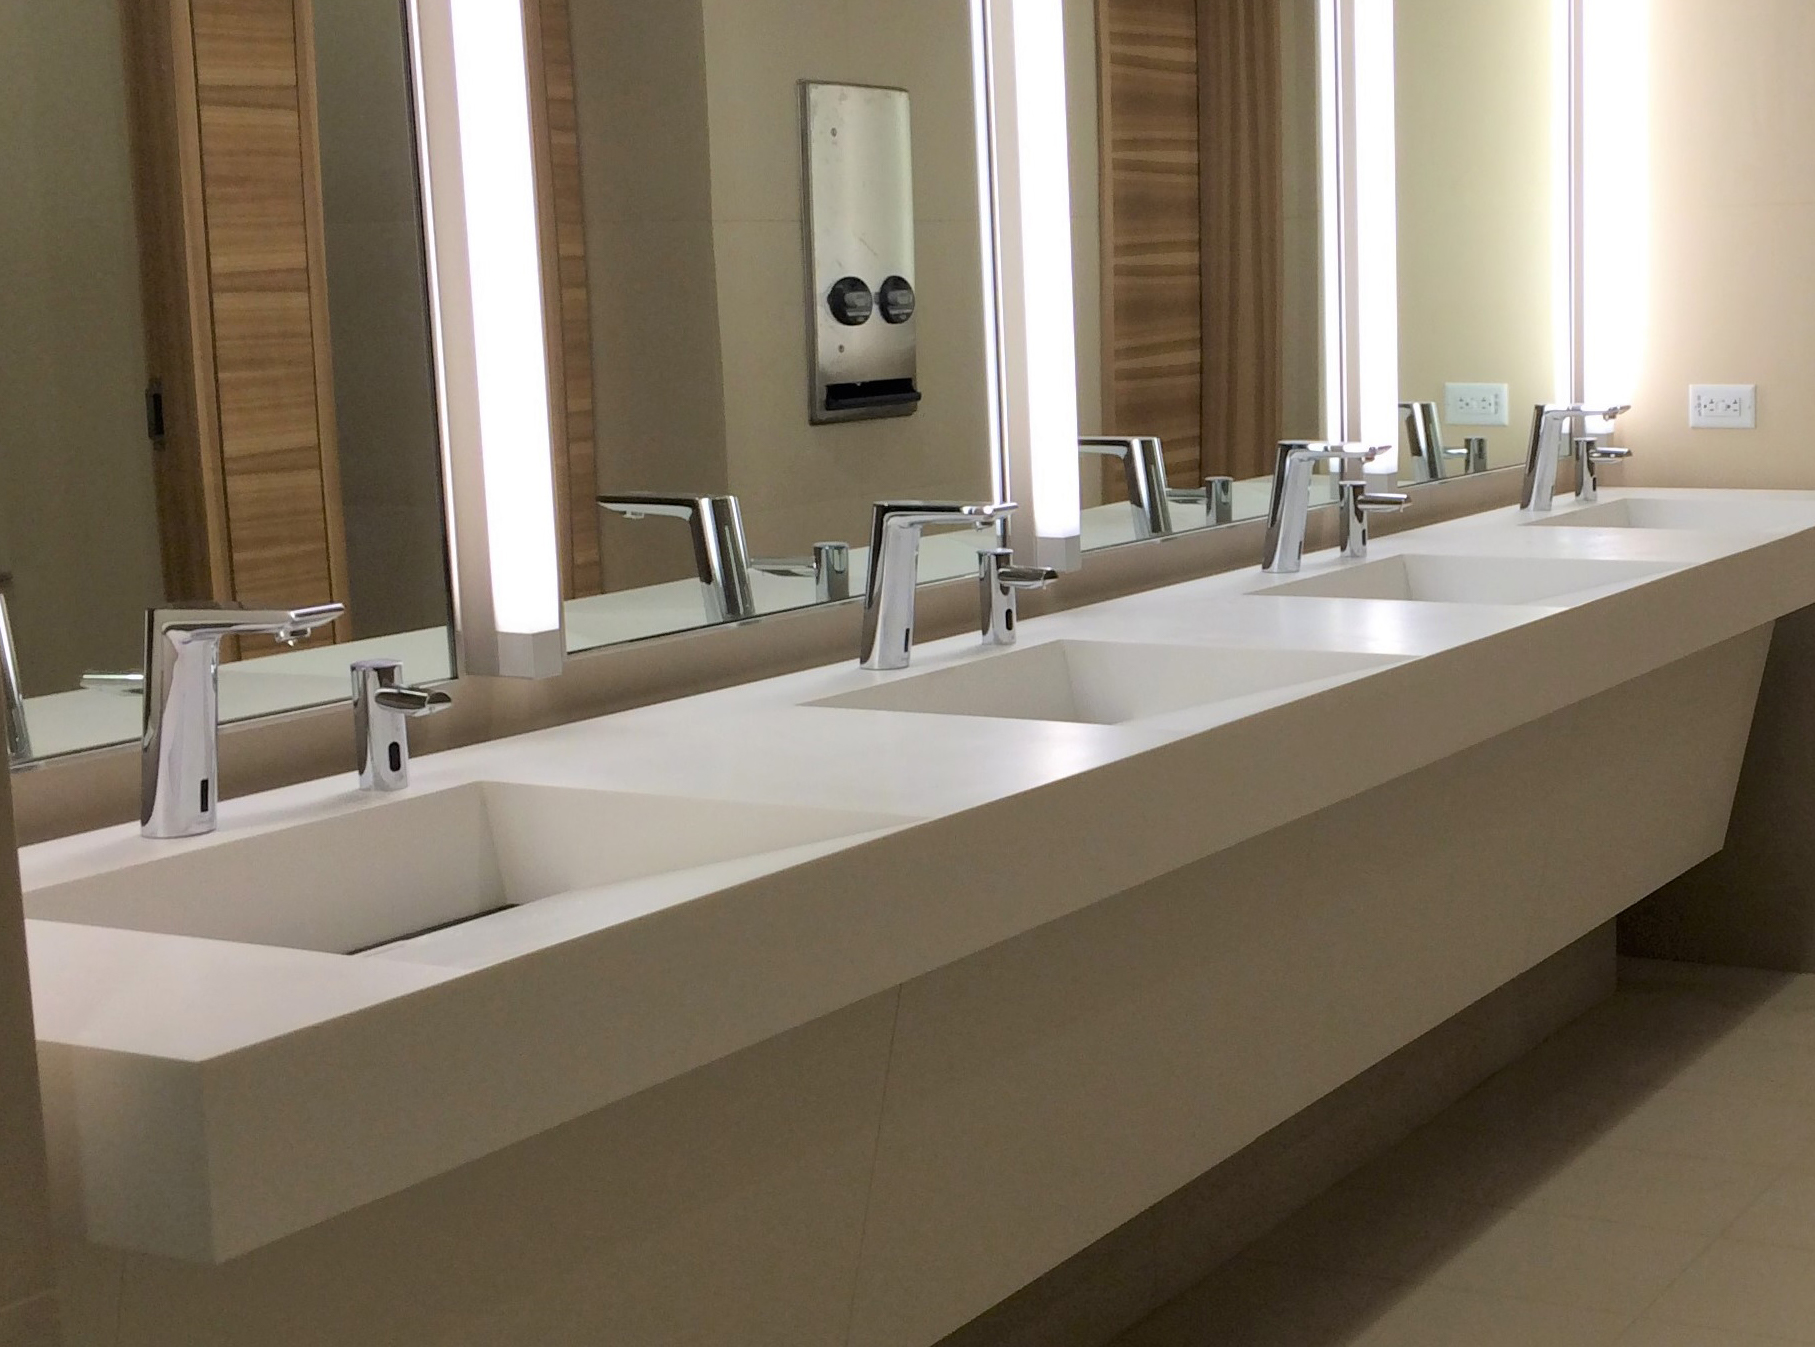 Everything Including The Bathroom Sink Solid Surface Elegance And Ada Compliance Are Unlikely Friends Asst